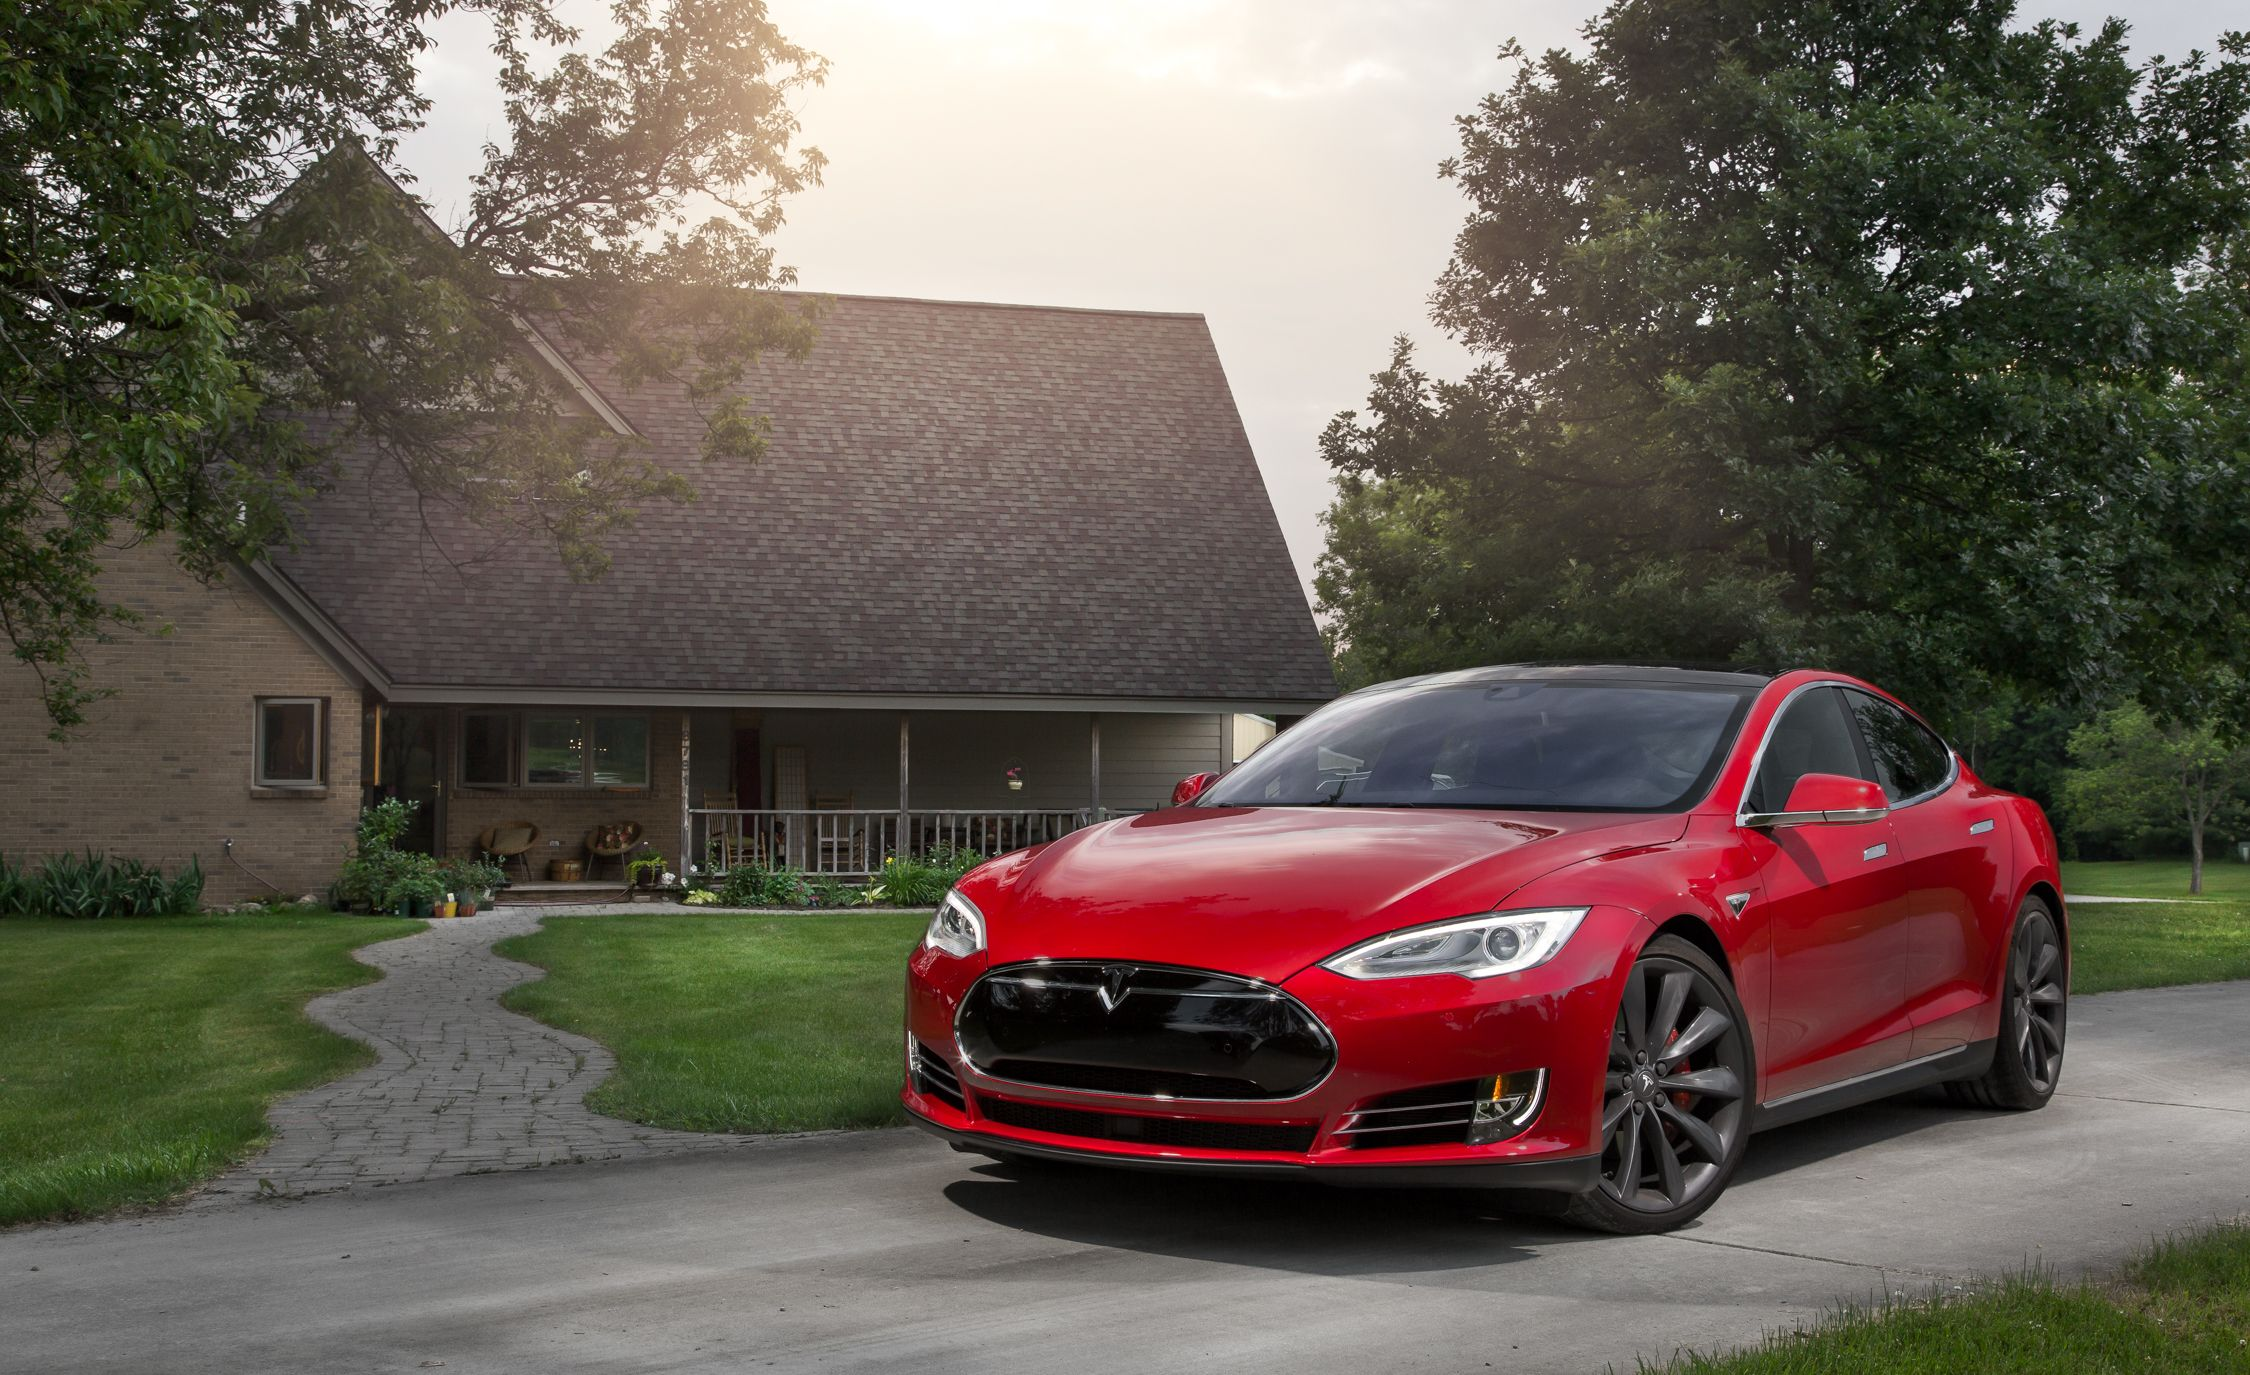 tesla announces 762 hp model s ludicrous mode new base model news car and driver. Black Bedroom Furniture Sets. Home Design Ideas